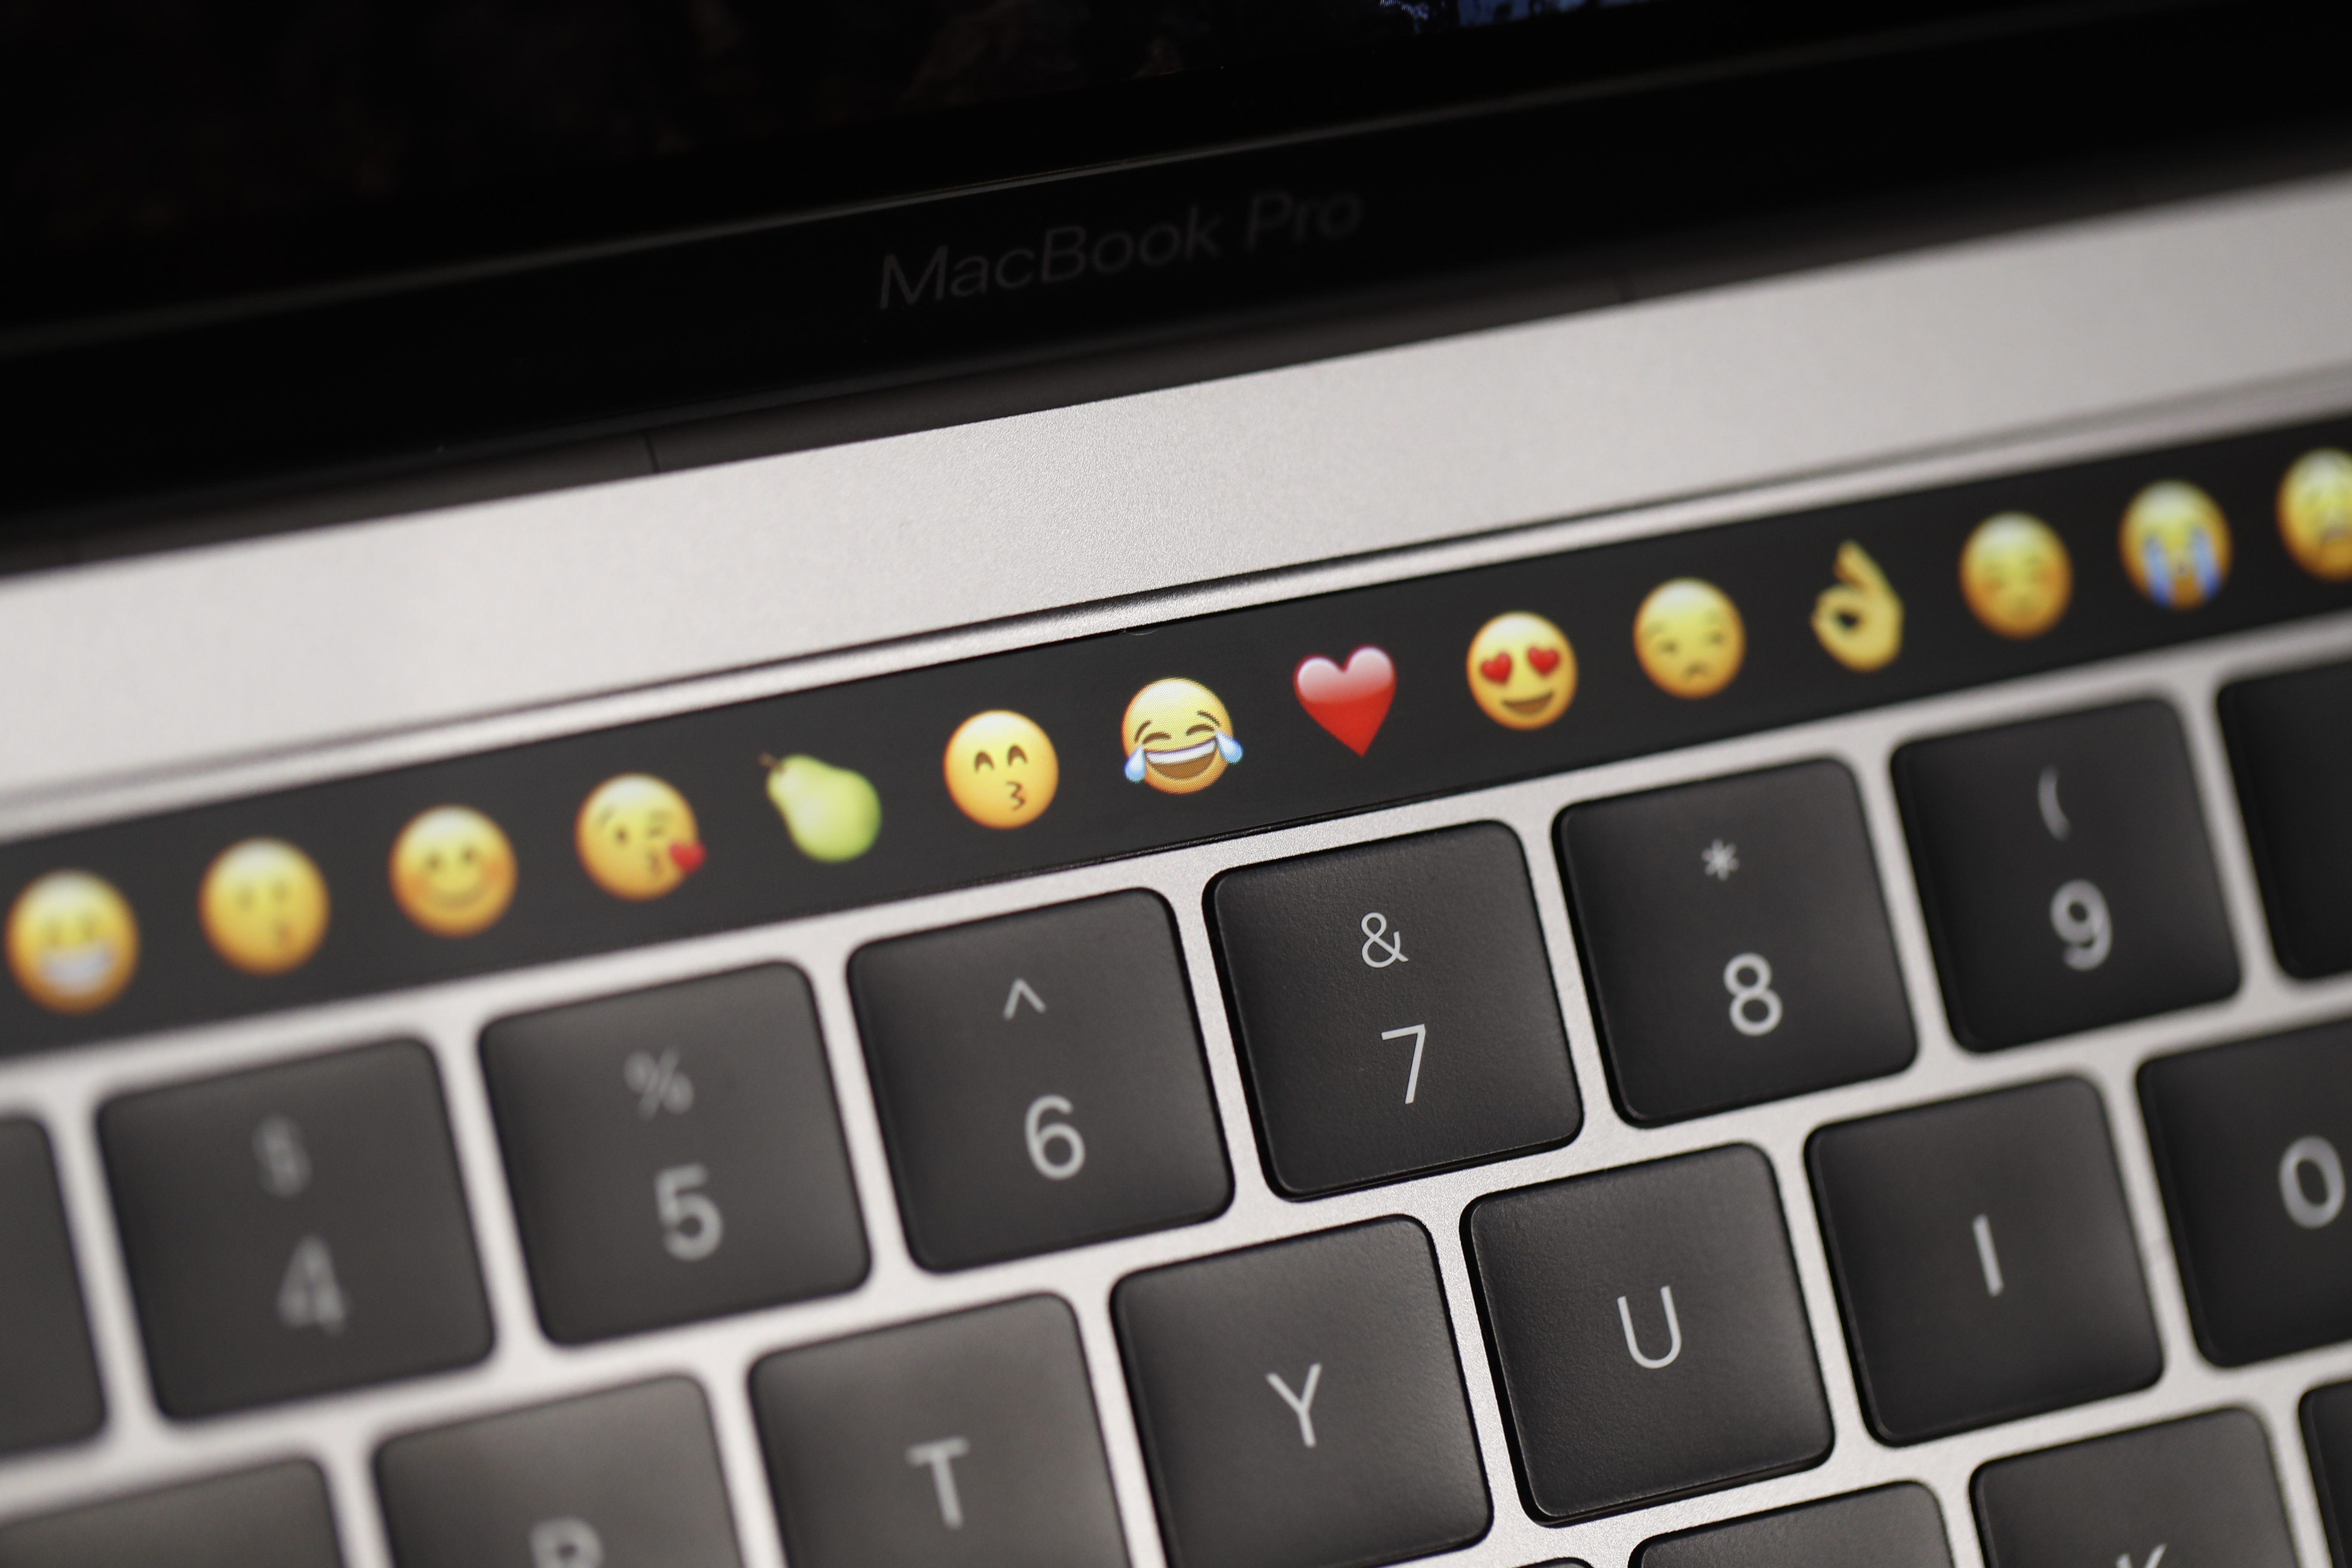 Emoticons are displayed on the Touch Bar on a new Apple MacBook Pro laptop during a product launch event on October 27, 2016 in Cupertino, California.